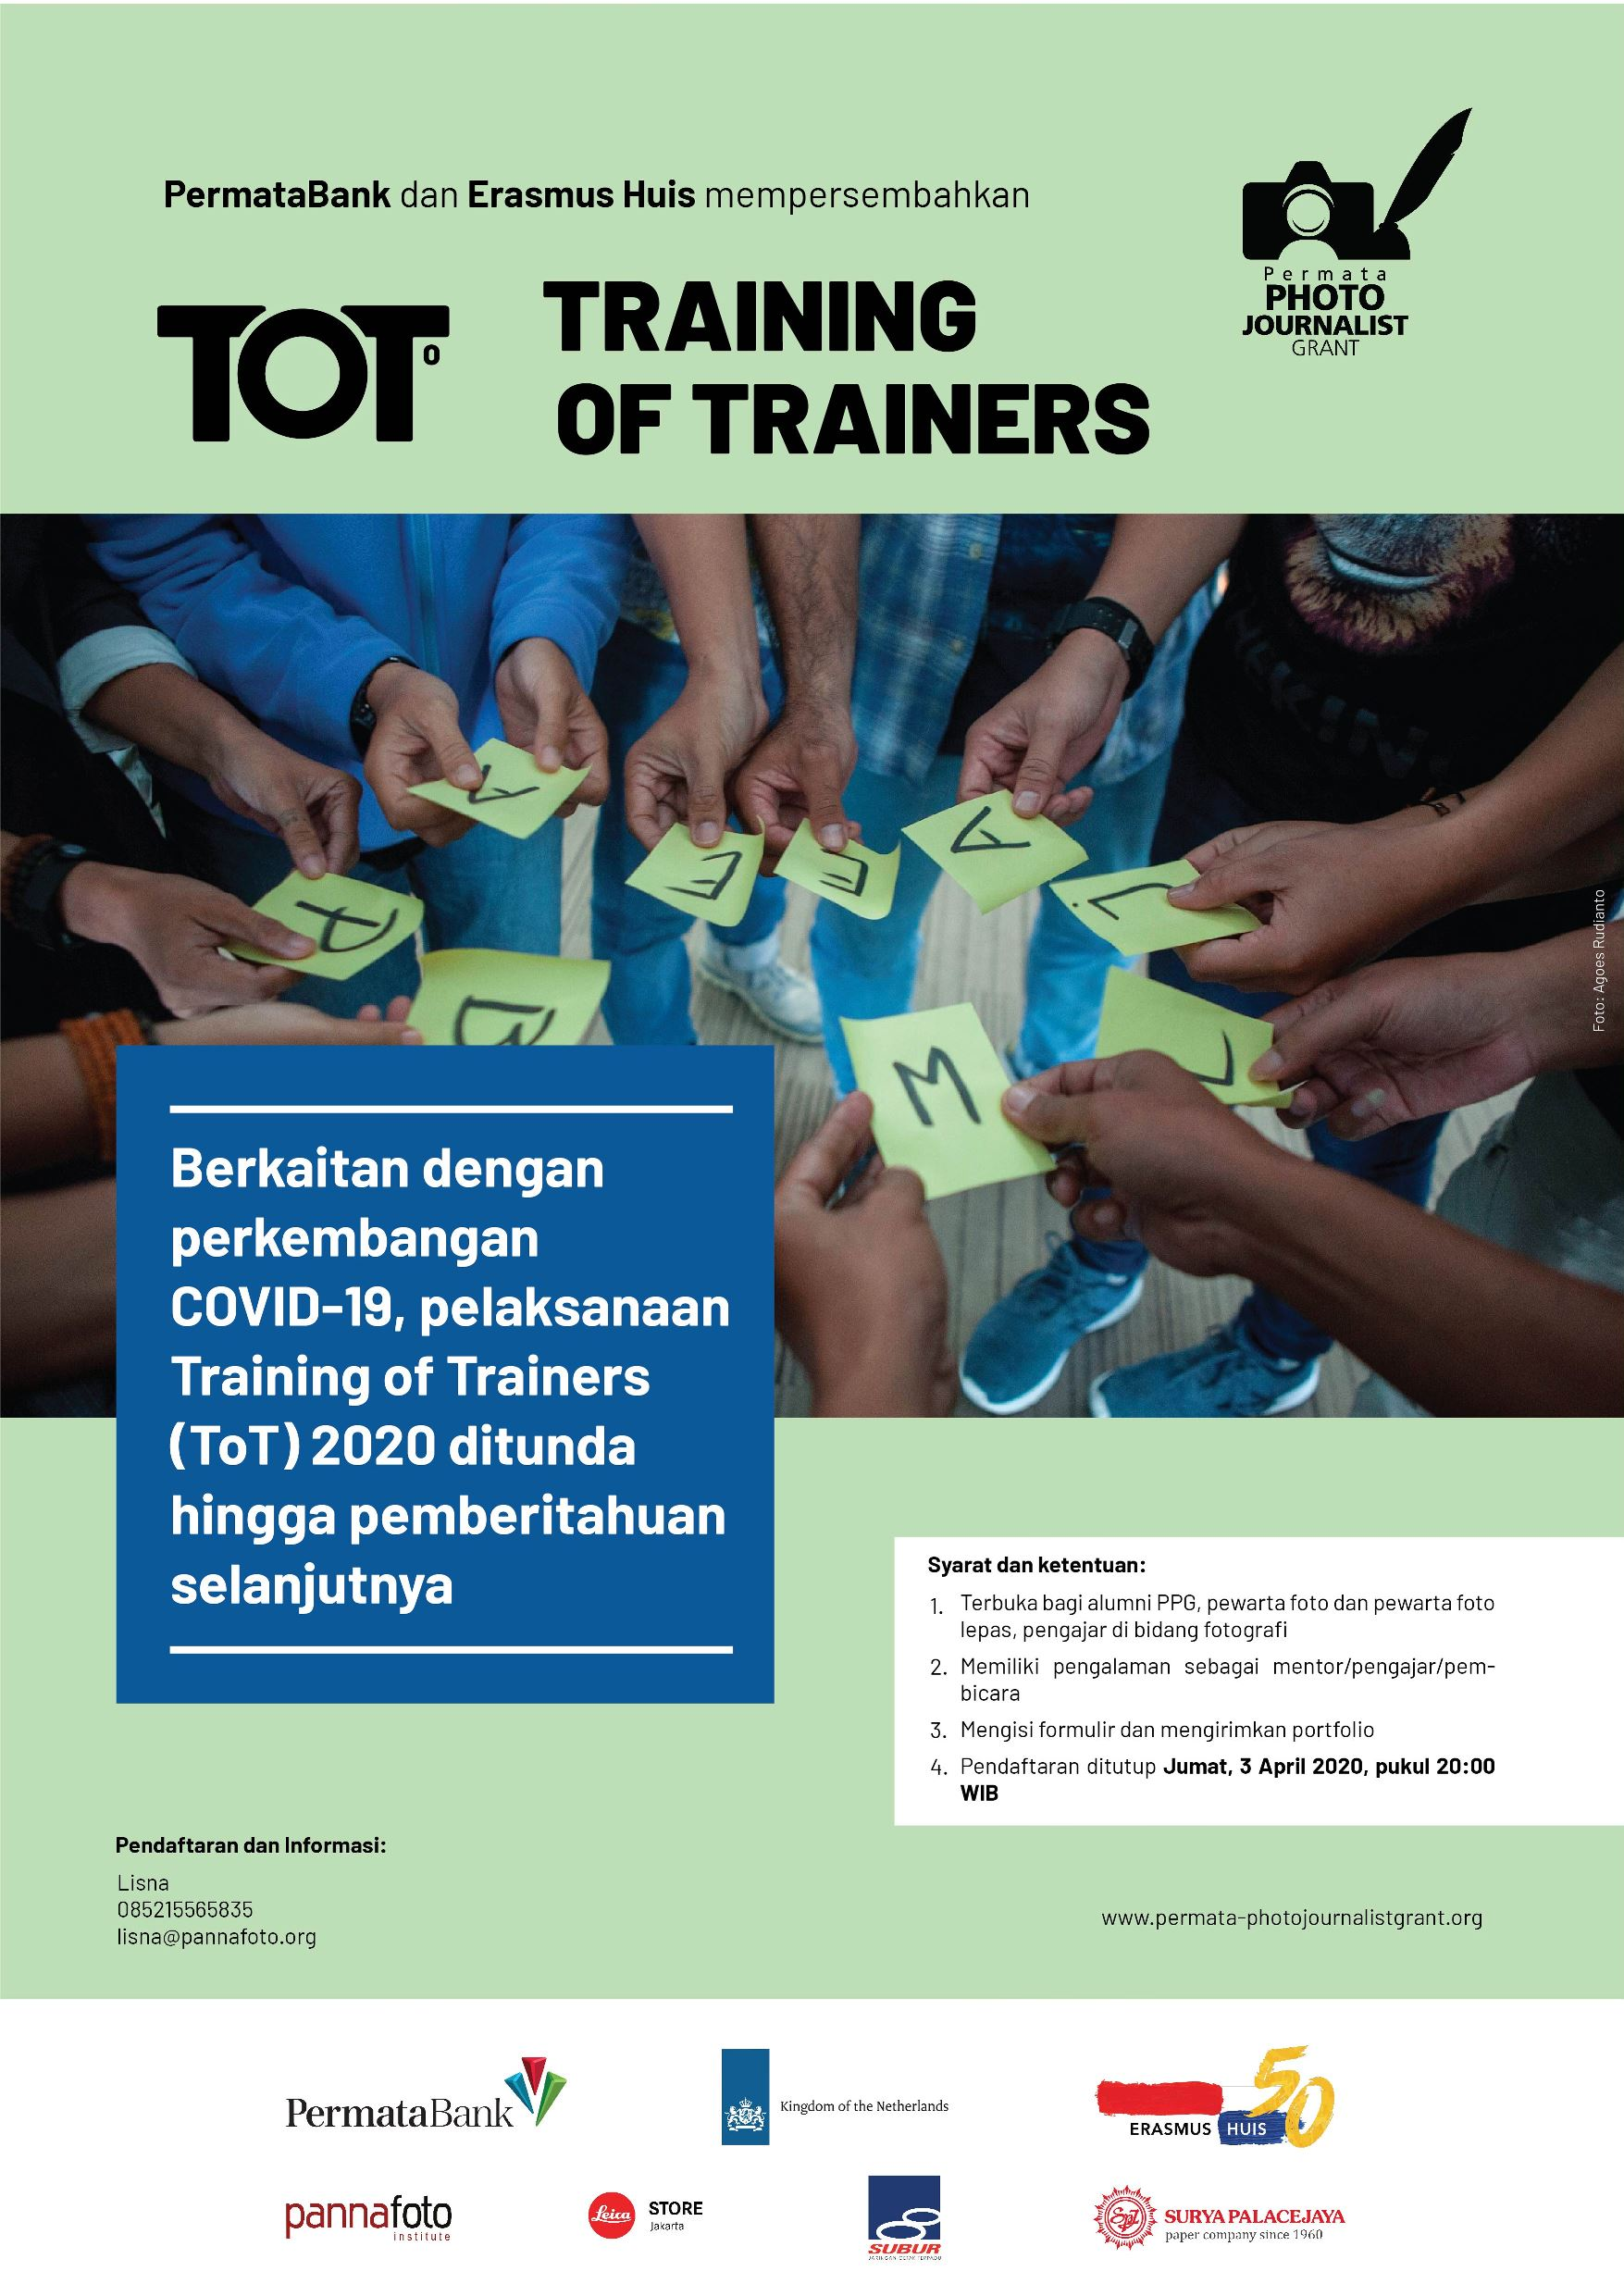 Training of Trainers 2020